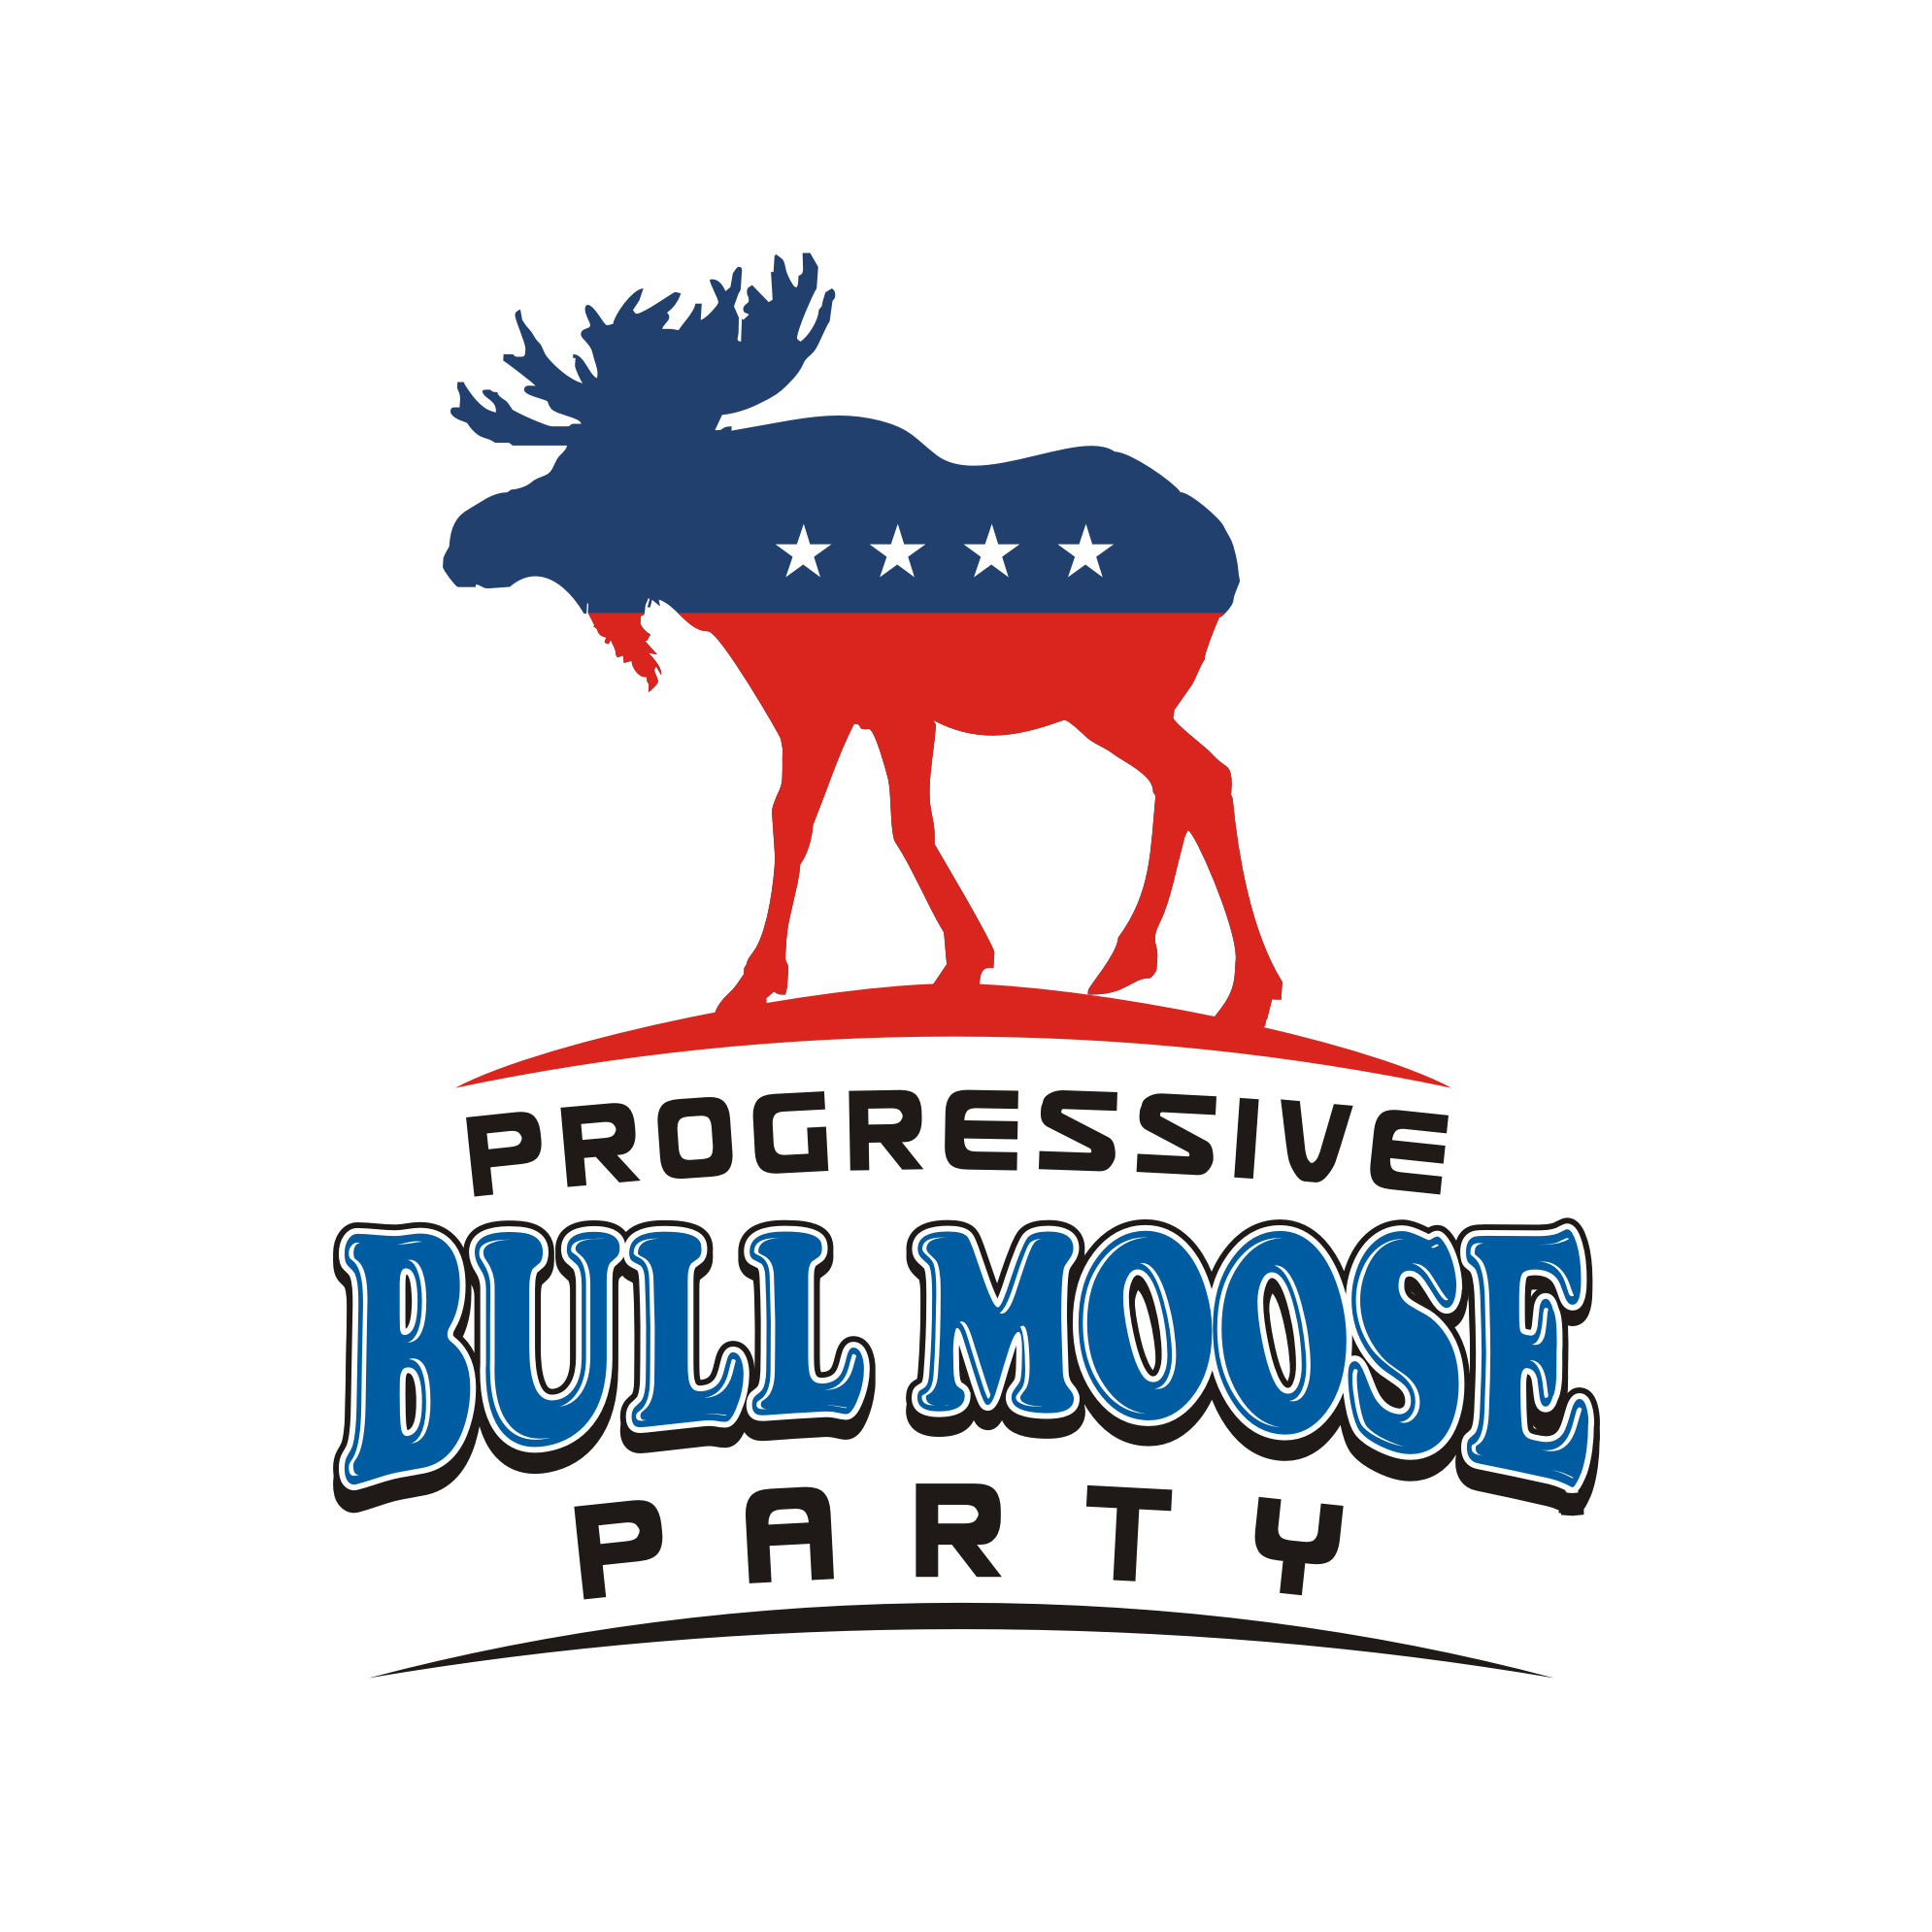 Logo Design by Private User - Entry No. 64 in the Logo Design Contest Progressive Bull Moose Party Logo Design.